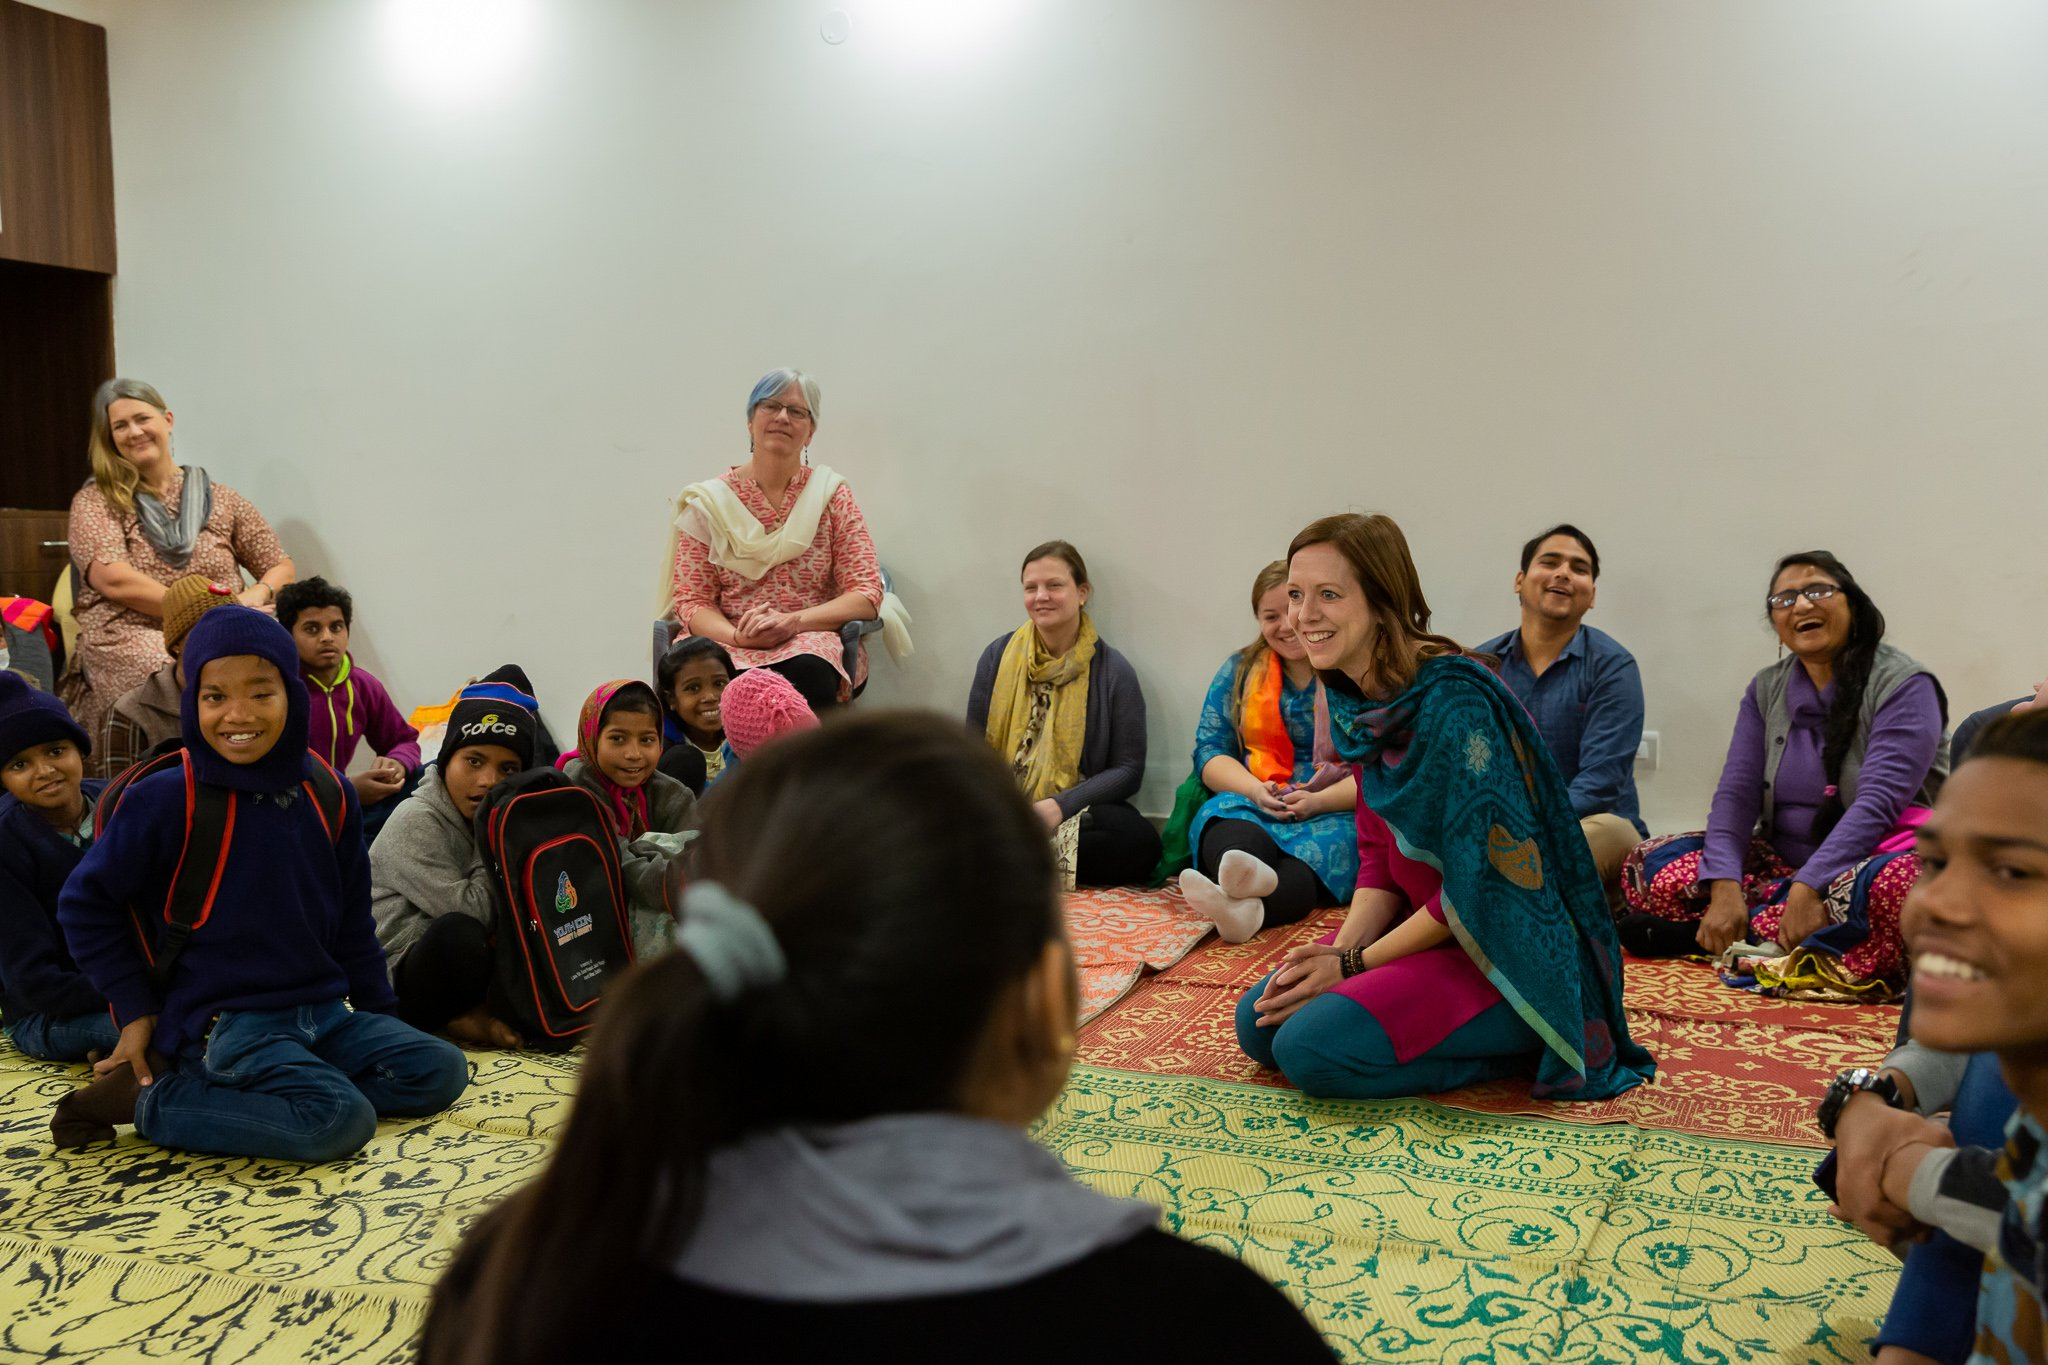 Terri leading a group activity during an AFC program in India